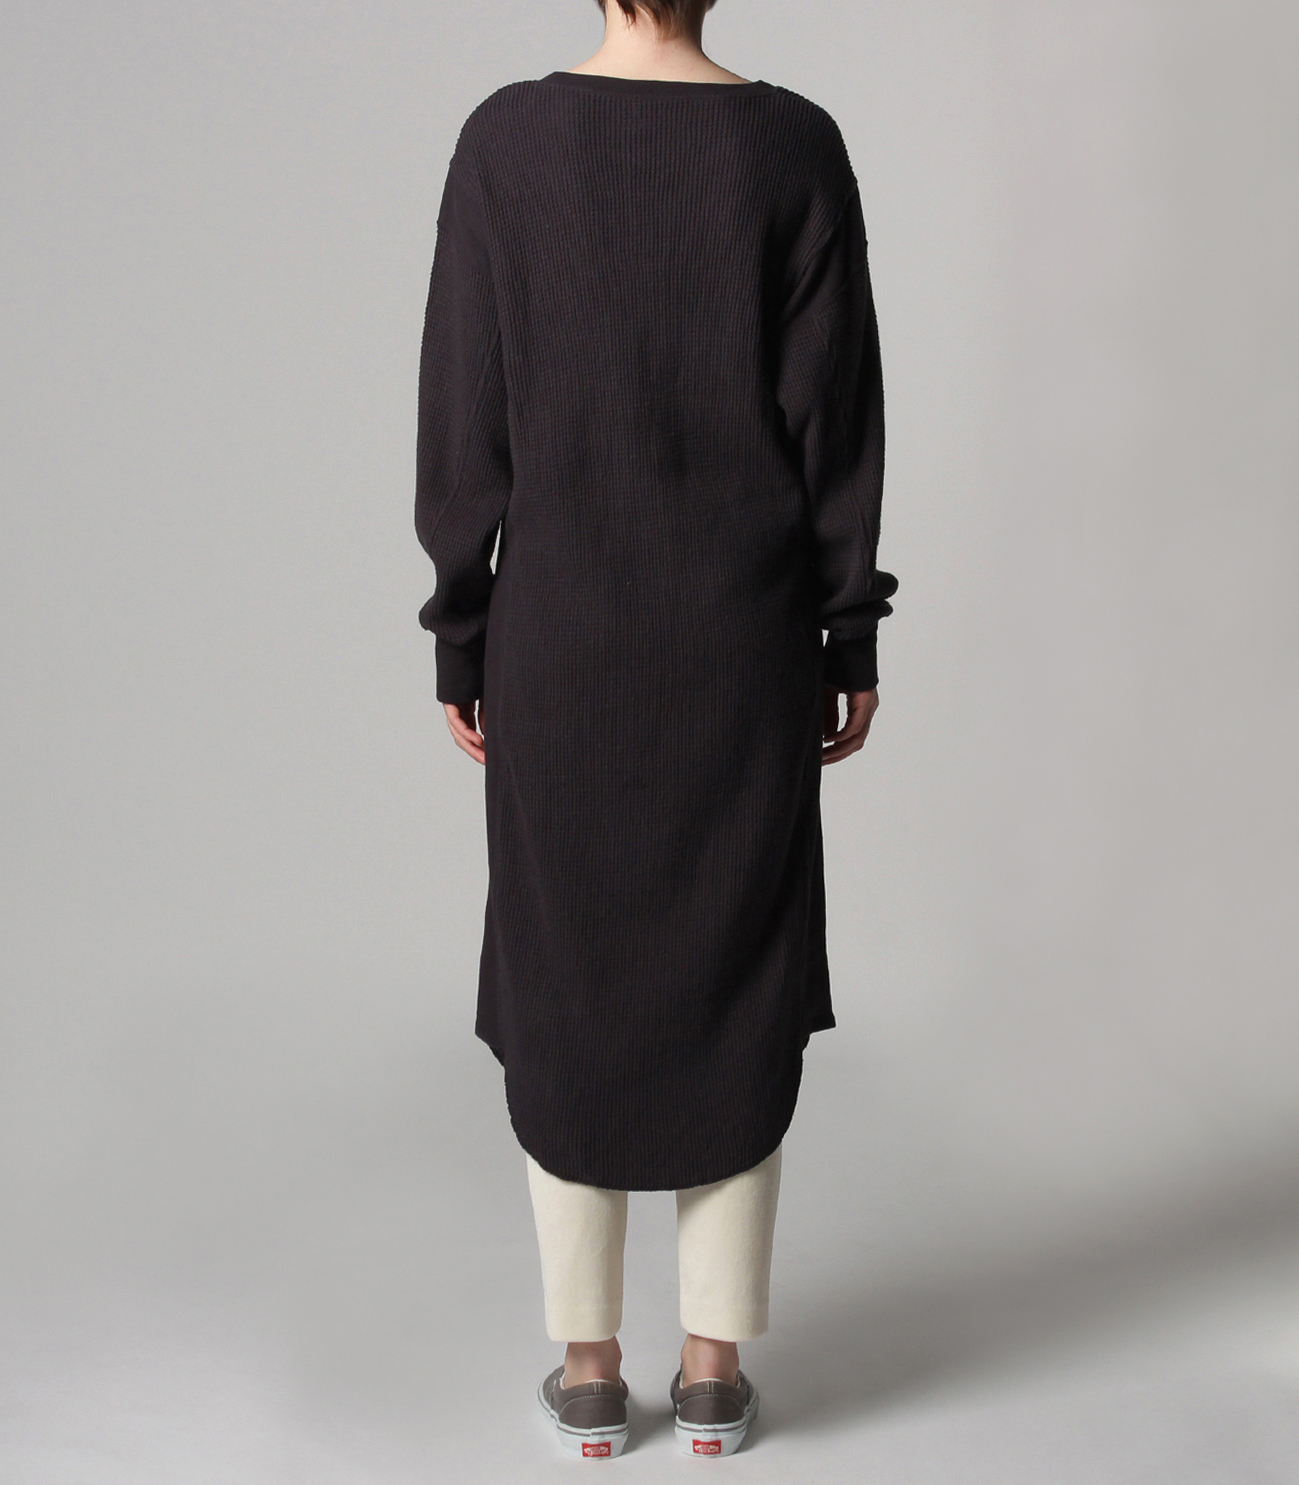 Double brushed waffle l/s dress 詳細画像 black 4